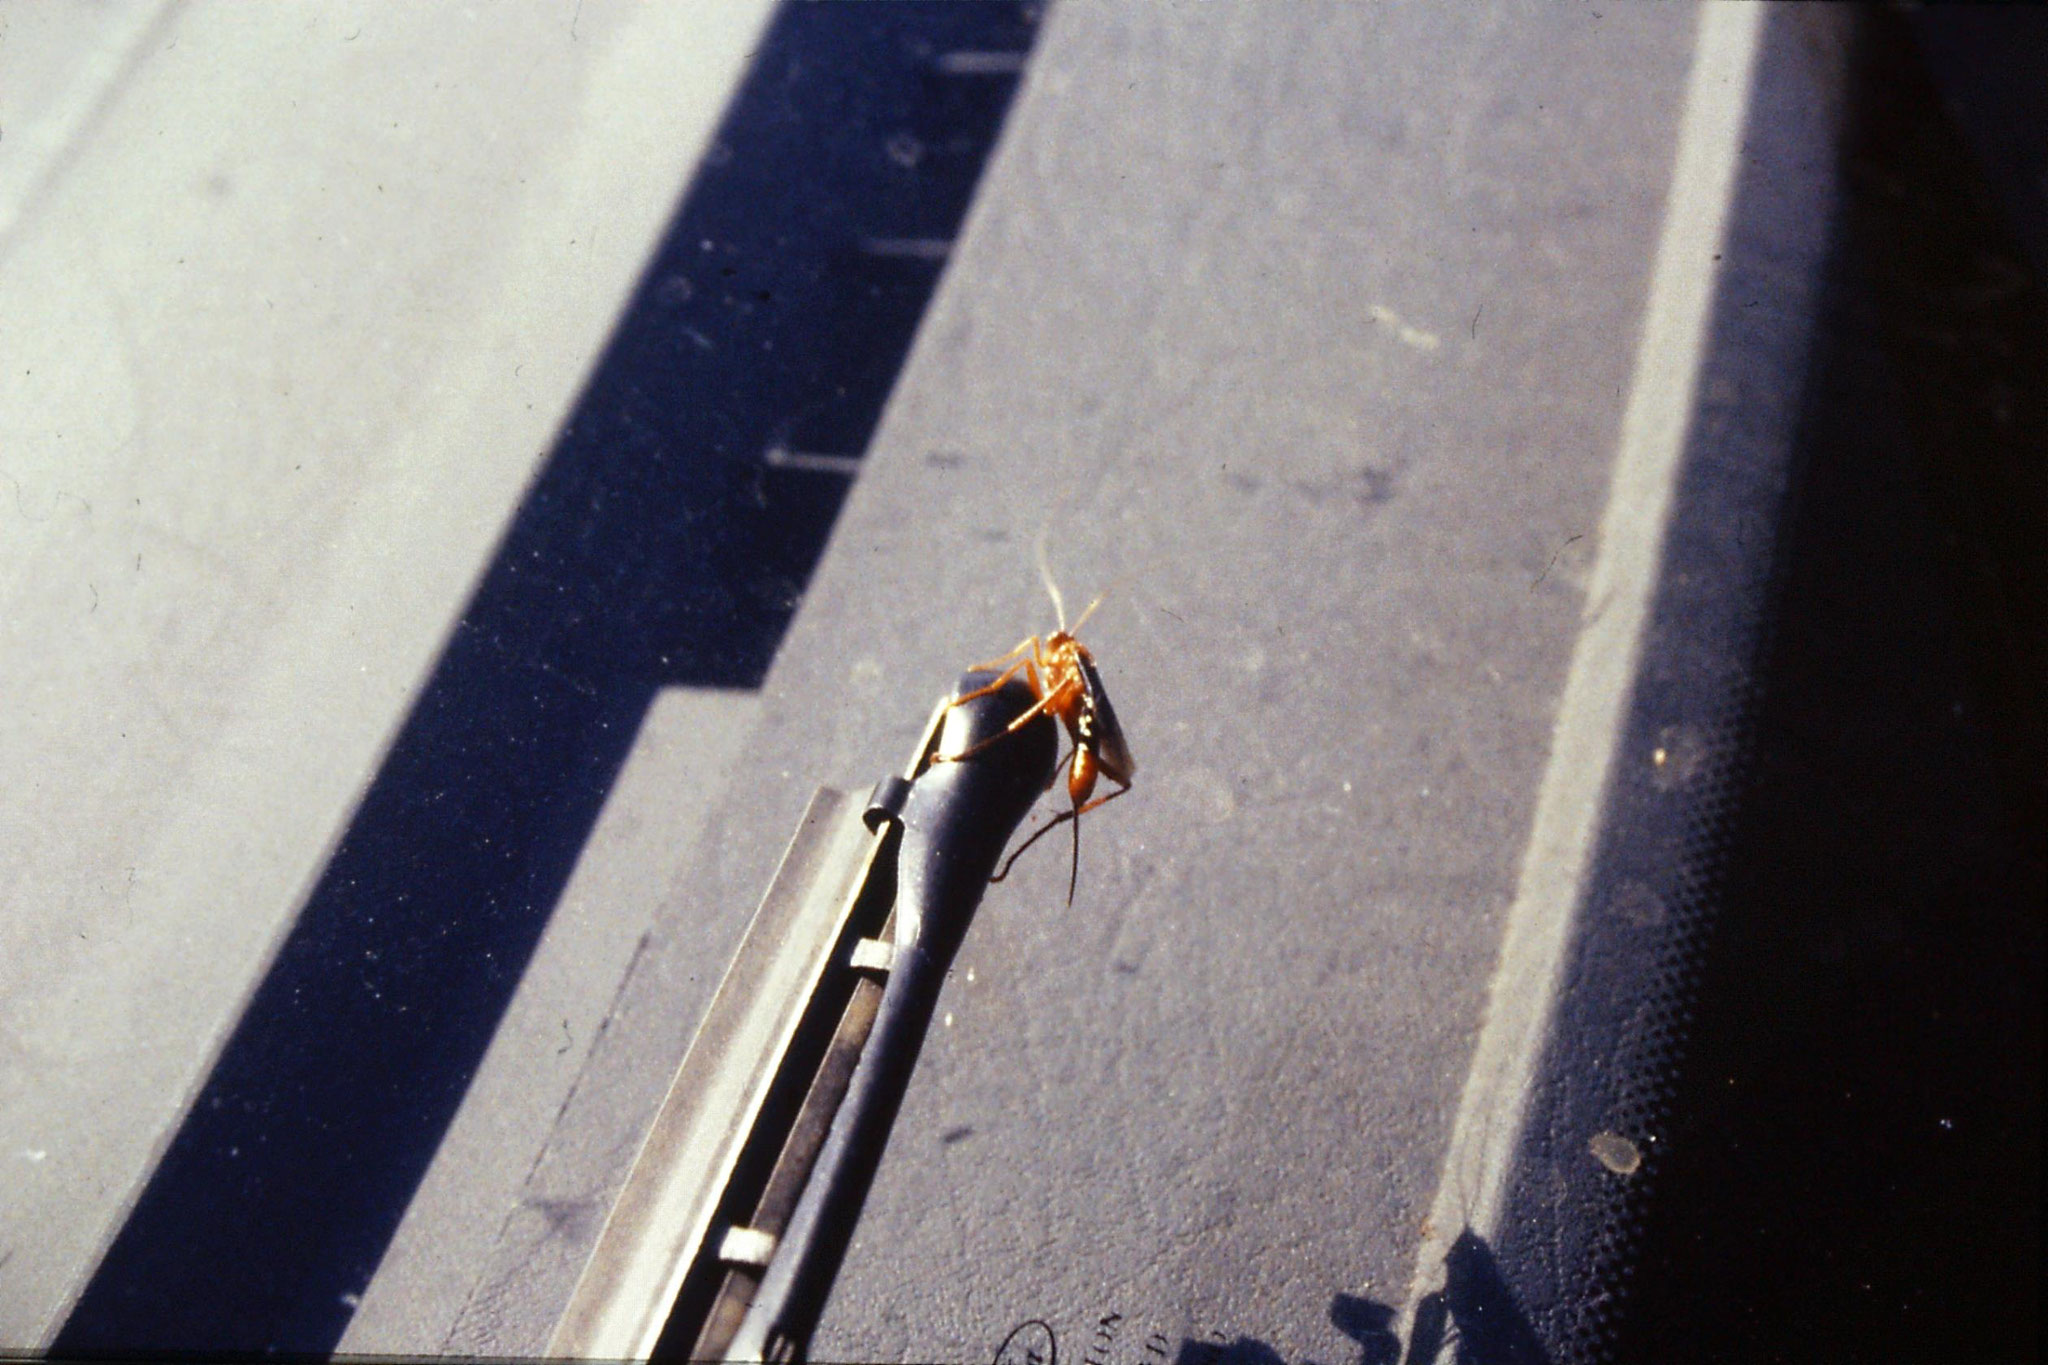 20/9/1990: 36:insect on windscreen